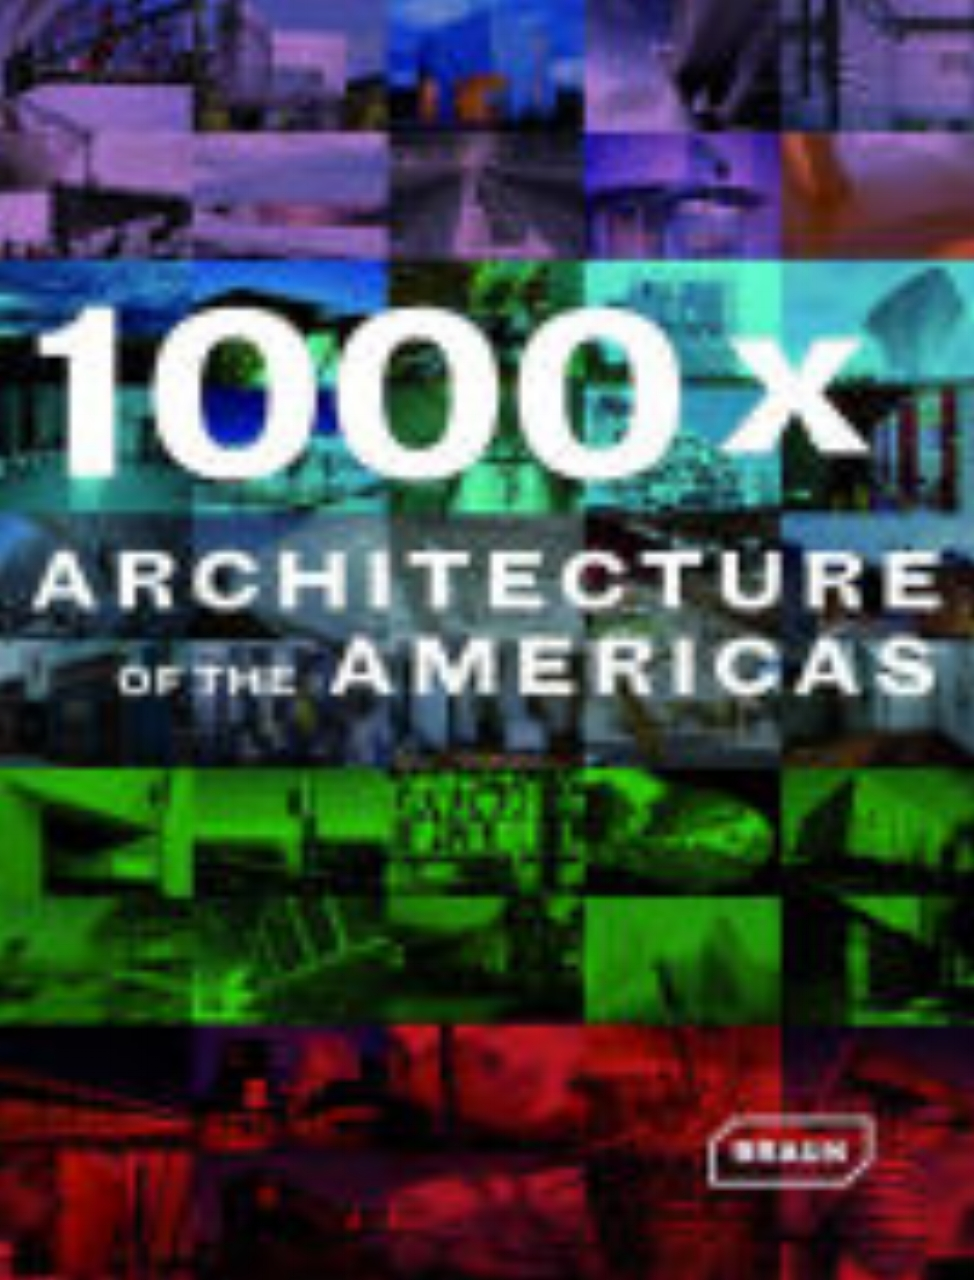 1000 x Architectures of the Americas.jpg